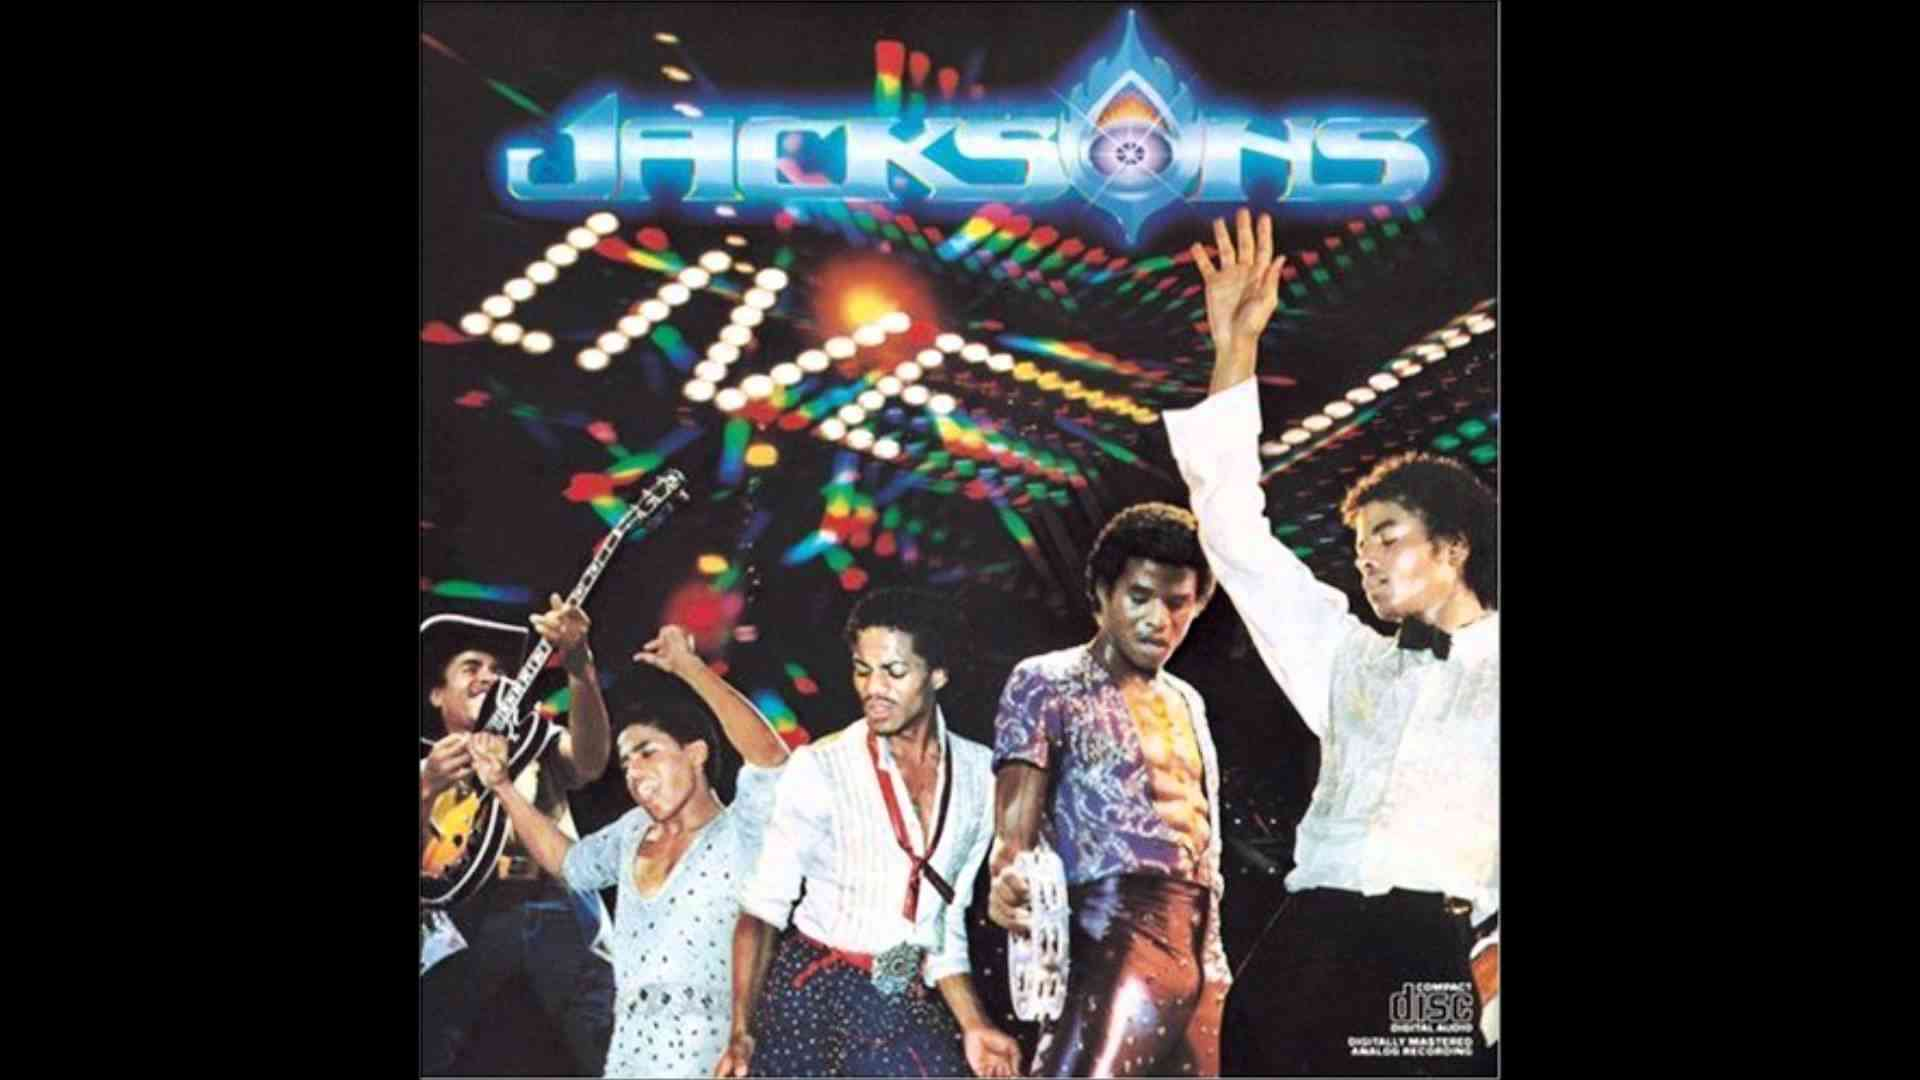 The Jacksons - Don't Stop 'Til You Get Enough (Live) [Audio HQ] HD - YouTube